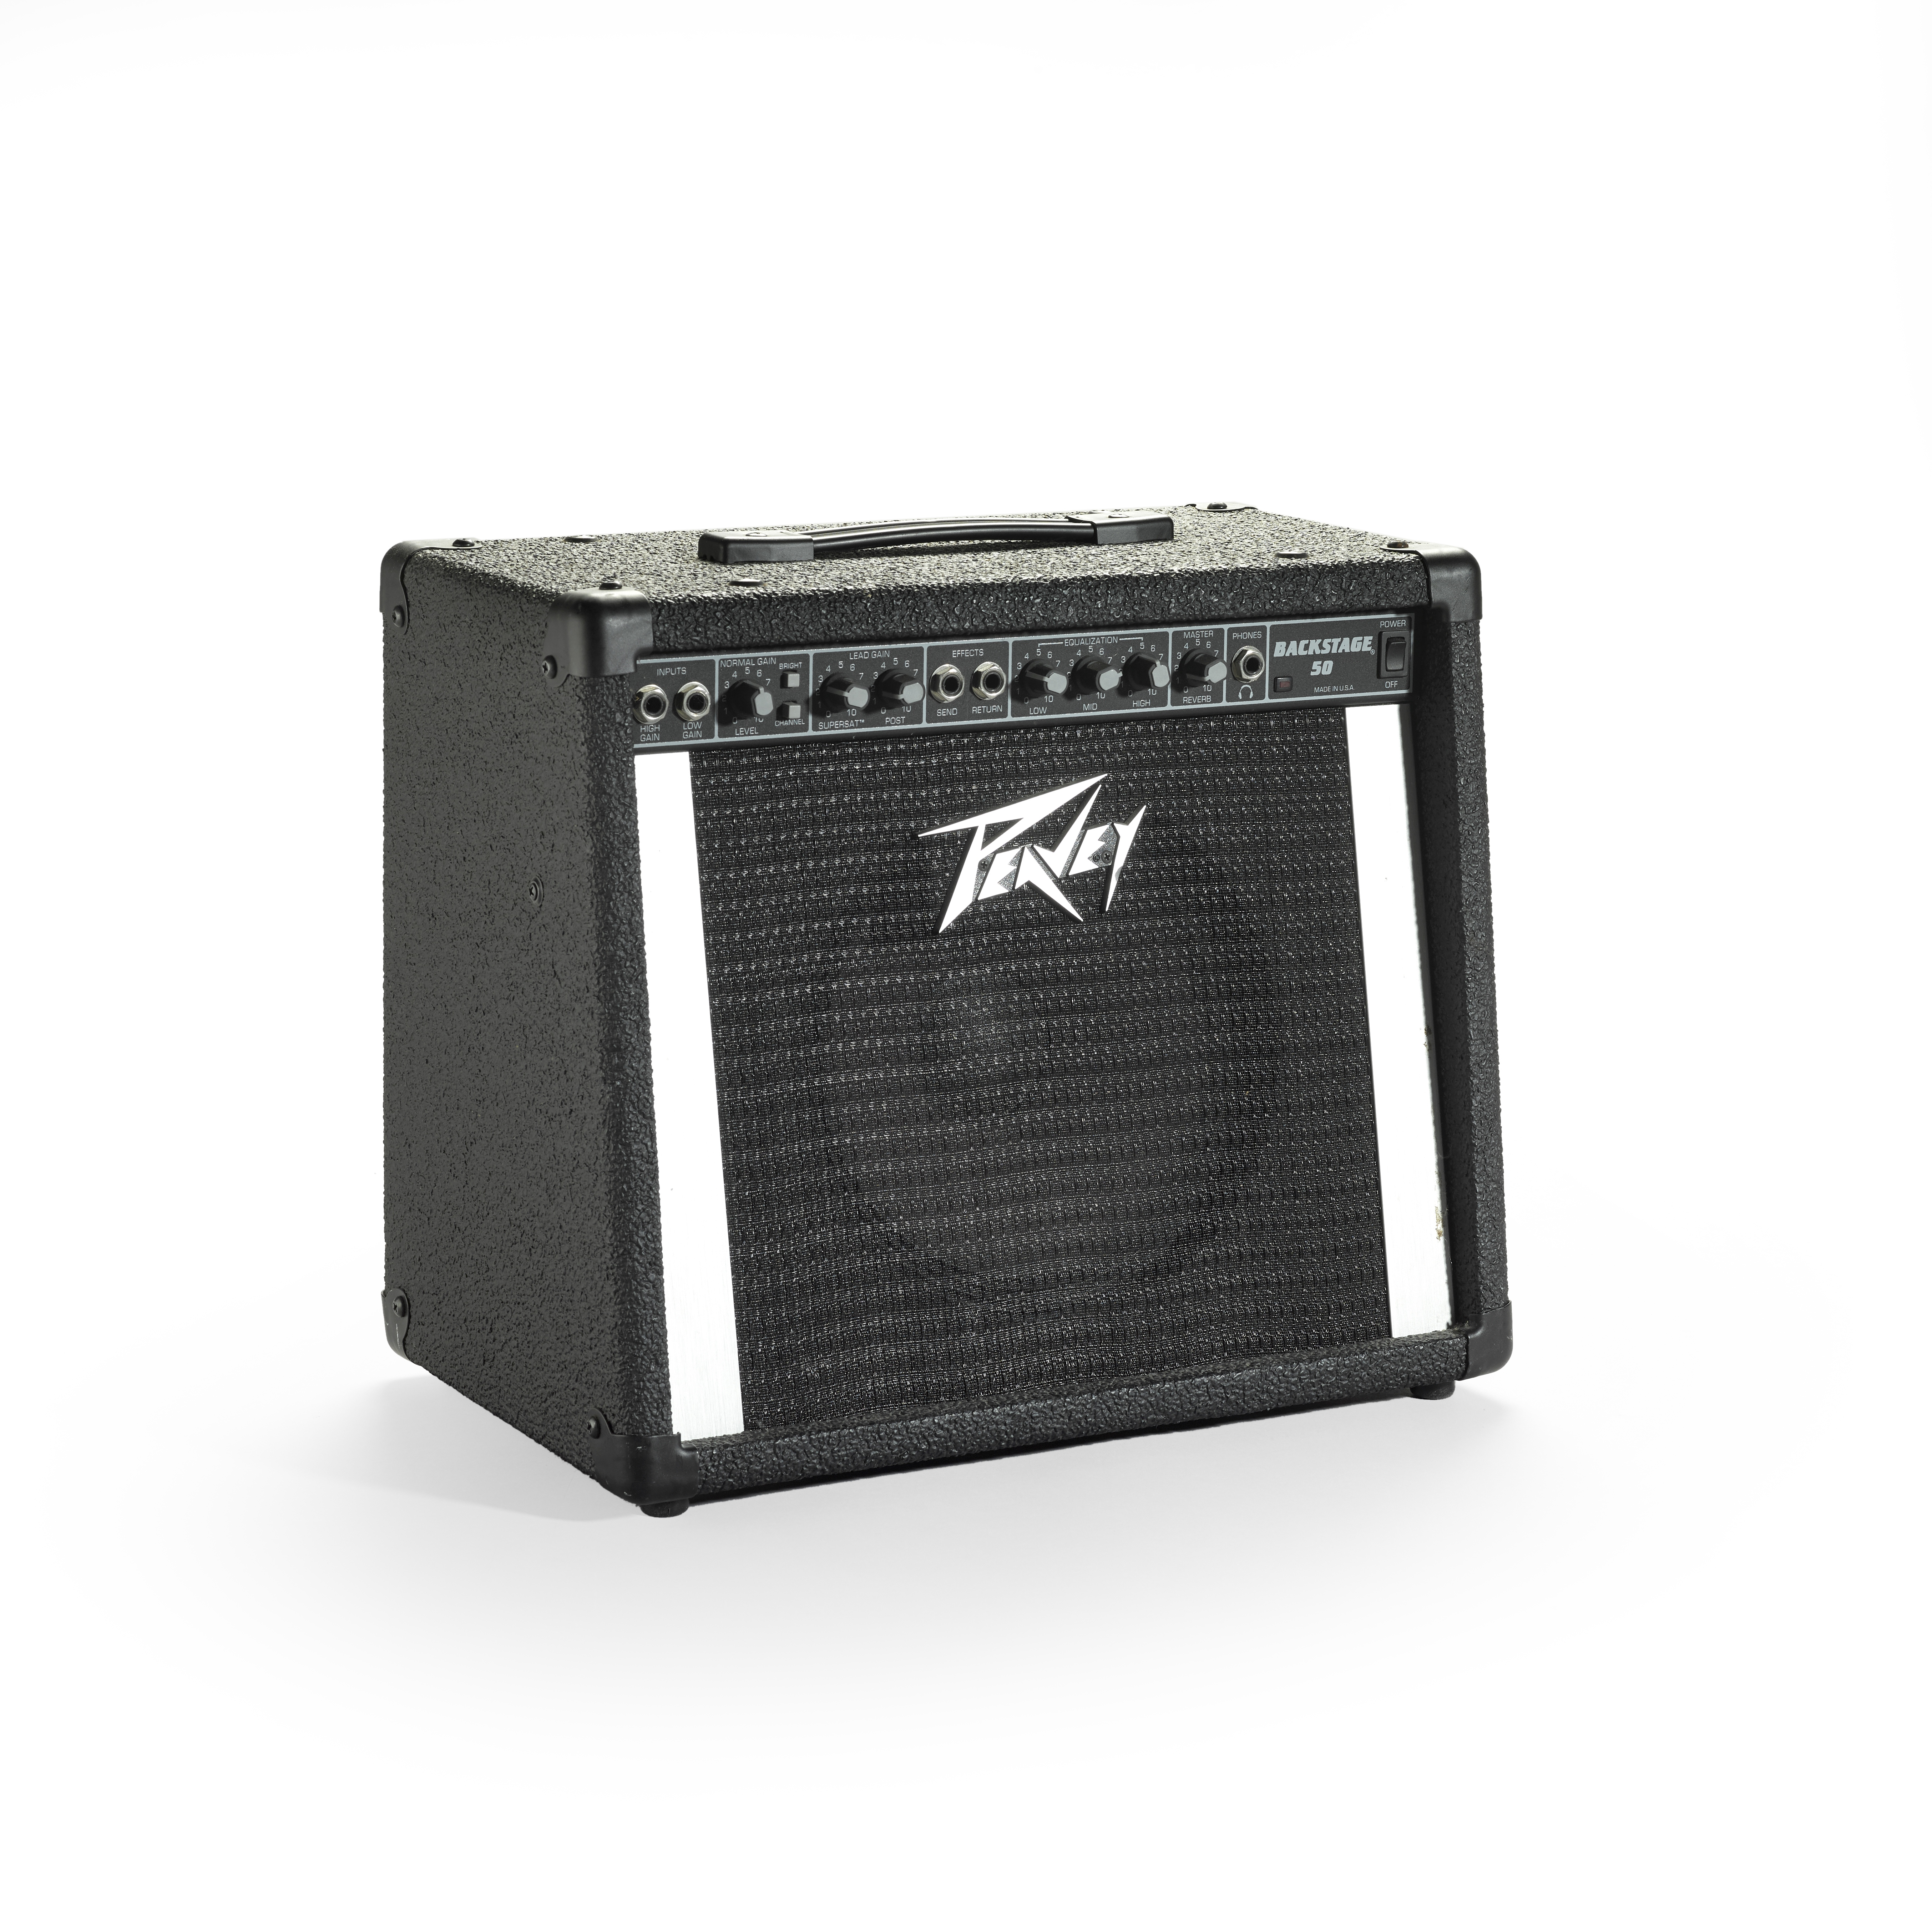 Lot 348 - A PEAVEY BACKSTAGE 50 AMPLIFIER OWNED AND USED BY JERRY GARCIA late 1980s